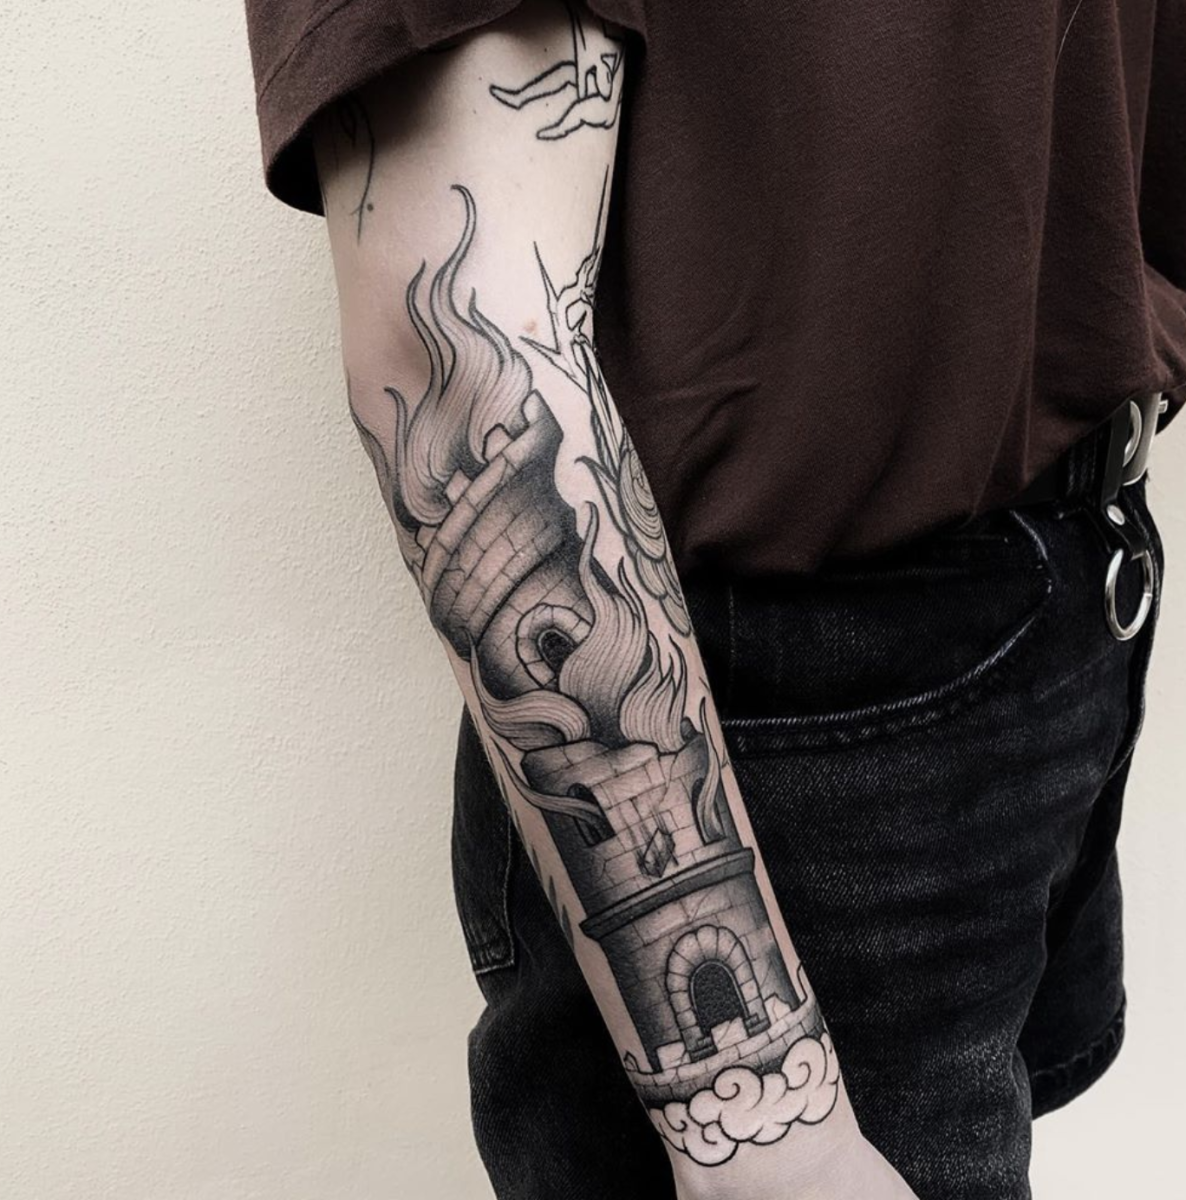 Tower tattoo by @ste.bonura